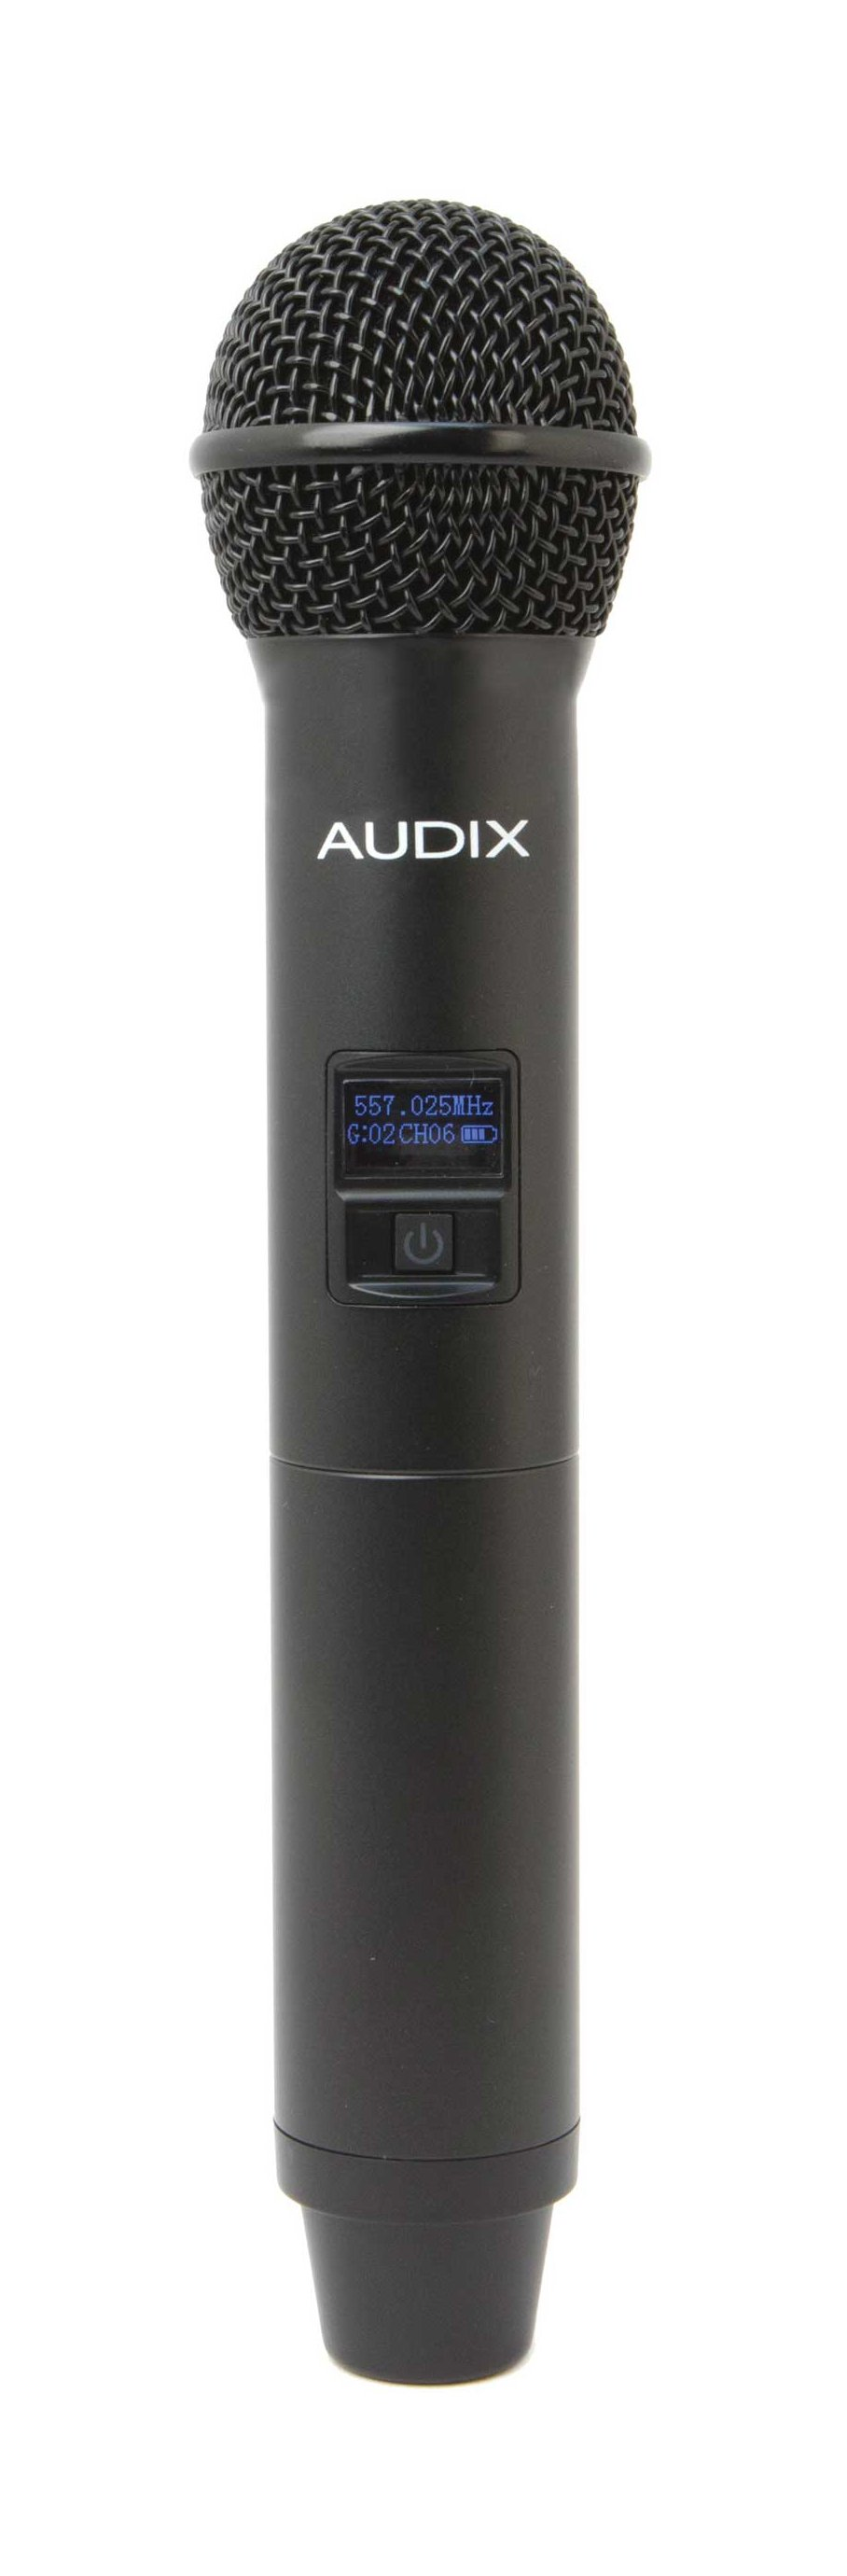 Handheld Transmitter Microphone with OM6 Capsule